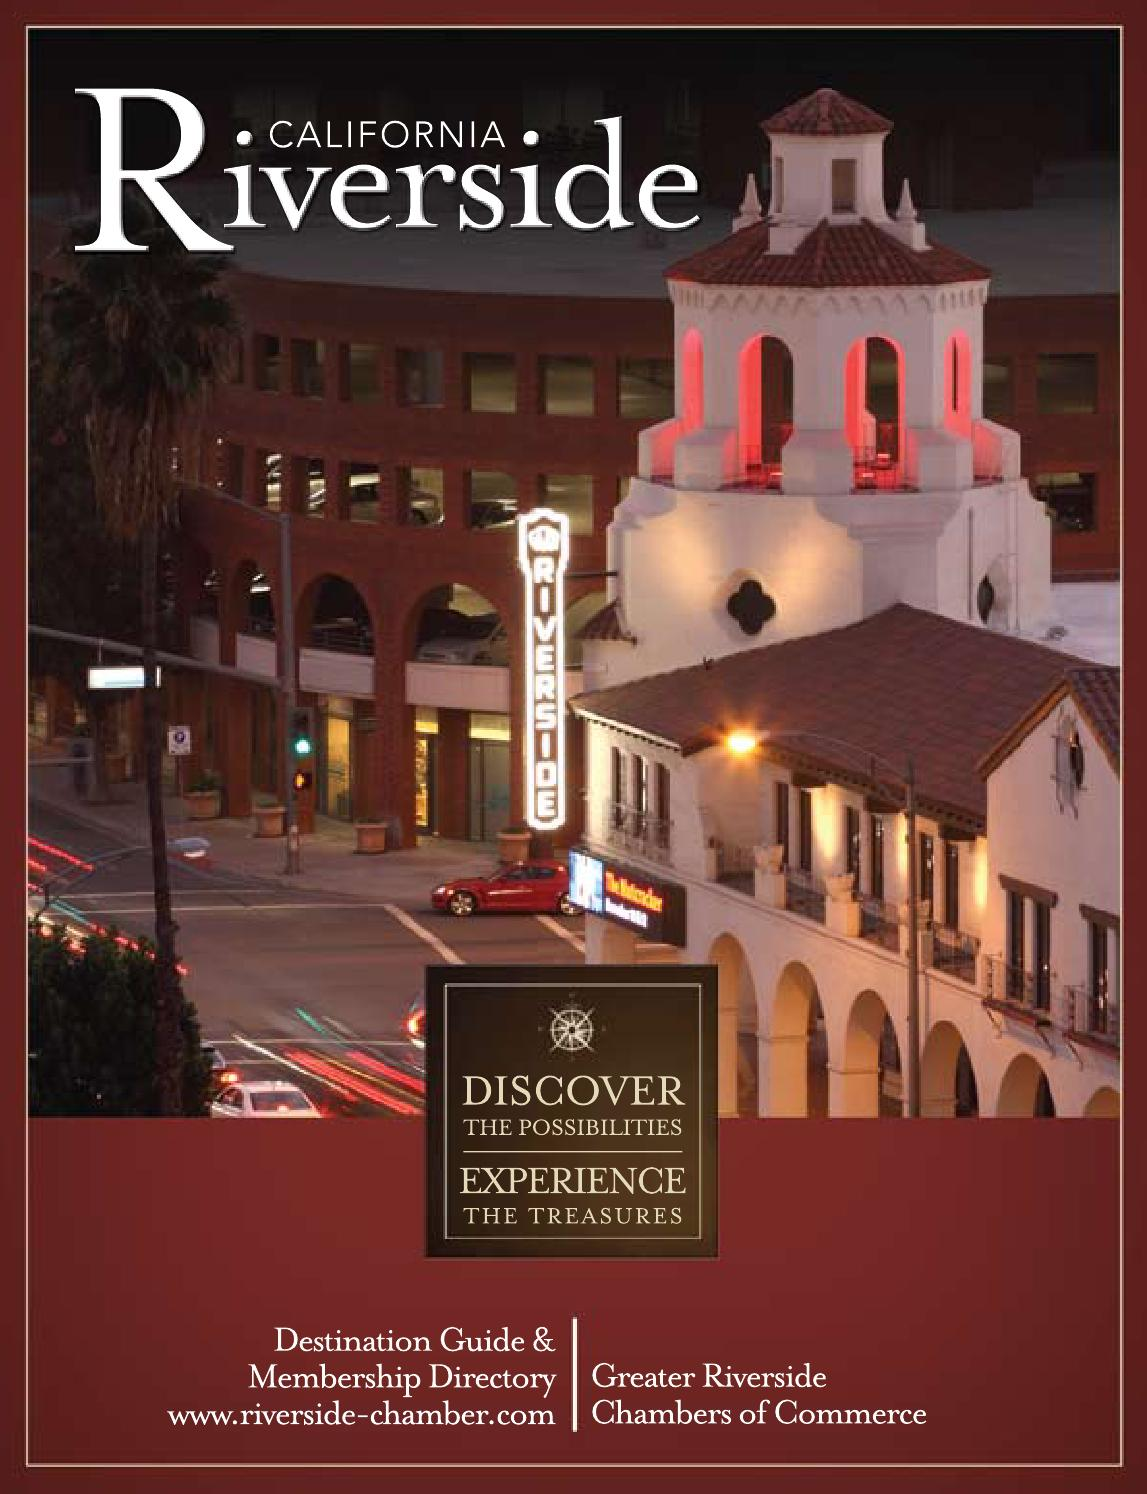 Riverside Destination Guide Business Directory 2011 2012 By